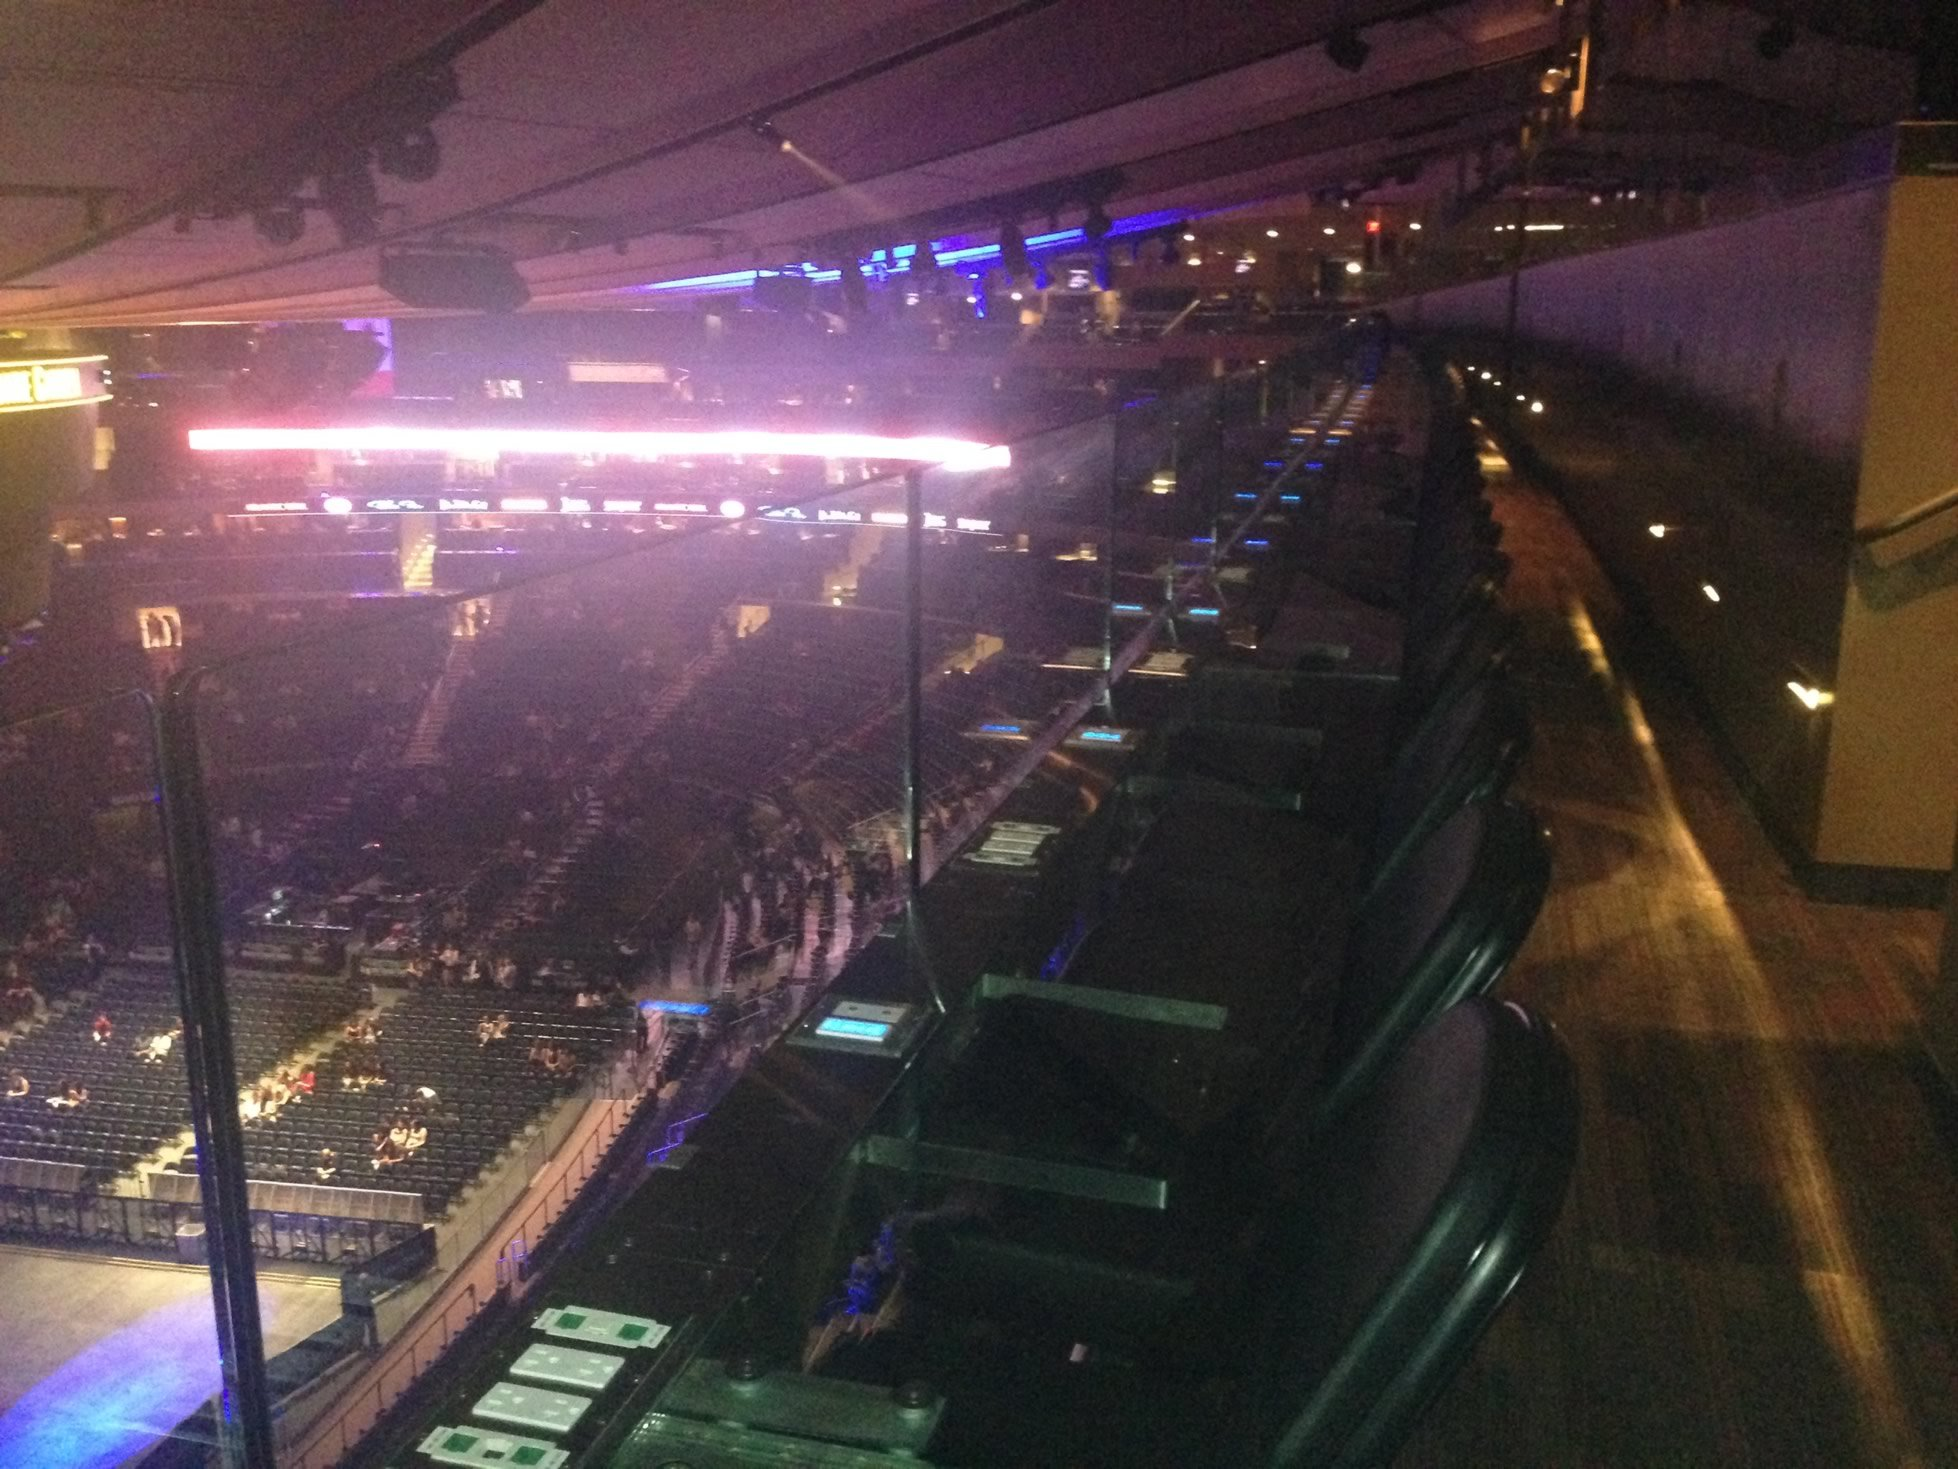 Madison Square Garden Chase Bridges Concert Seating Rateyourseats